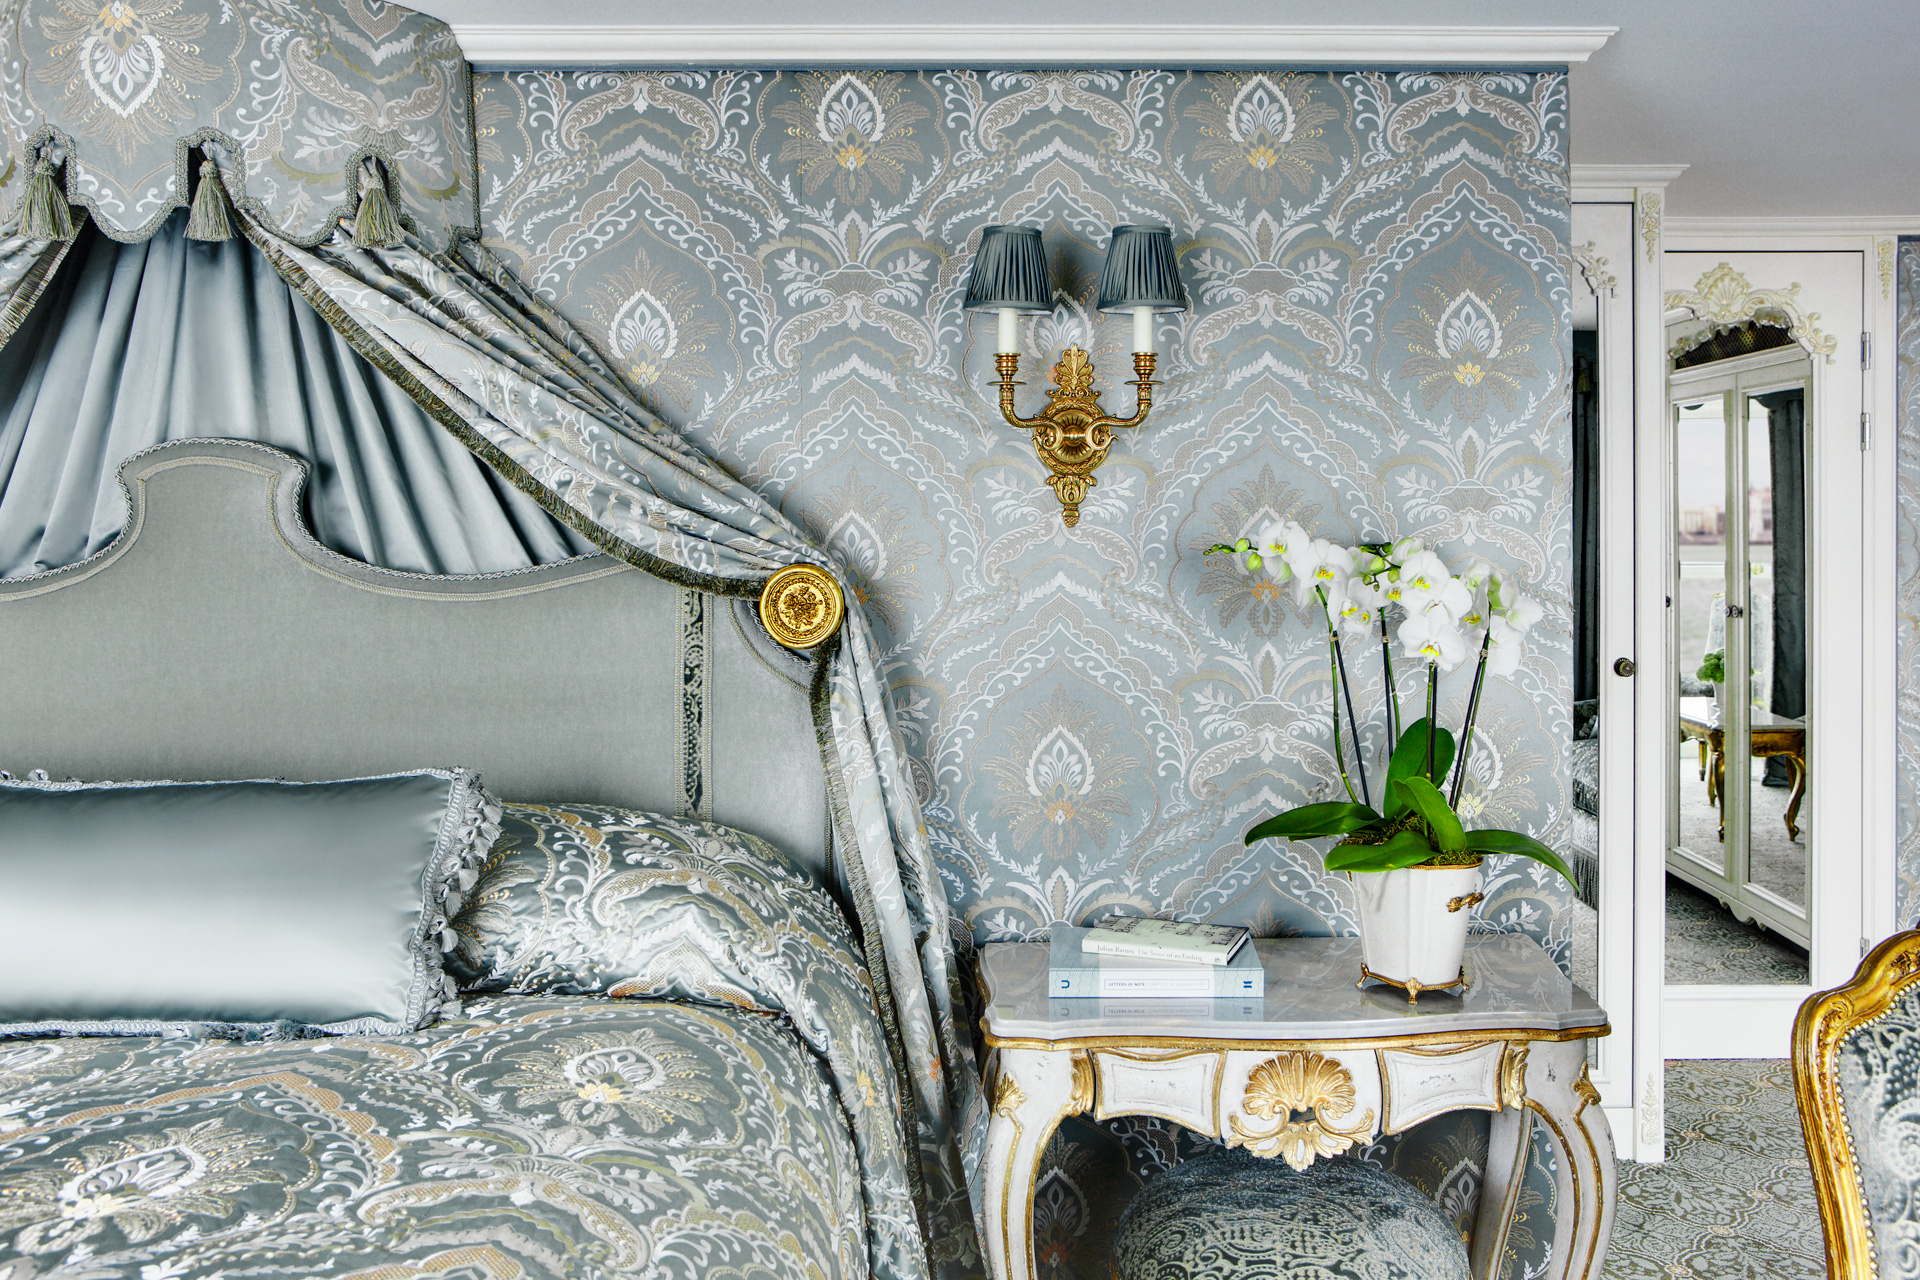 UNIWORLD Boutique River Cruises SS Maria Theresa Accommodation Suite 404 2.jpg